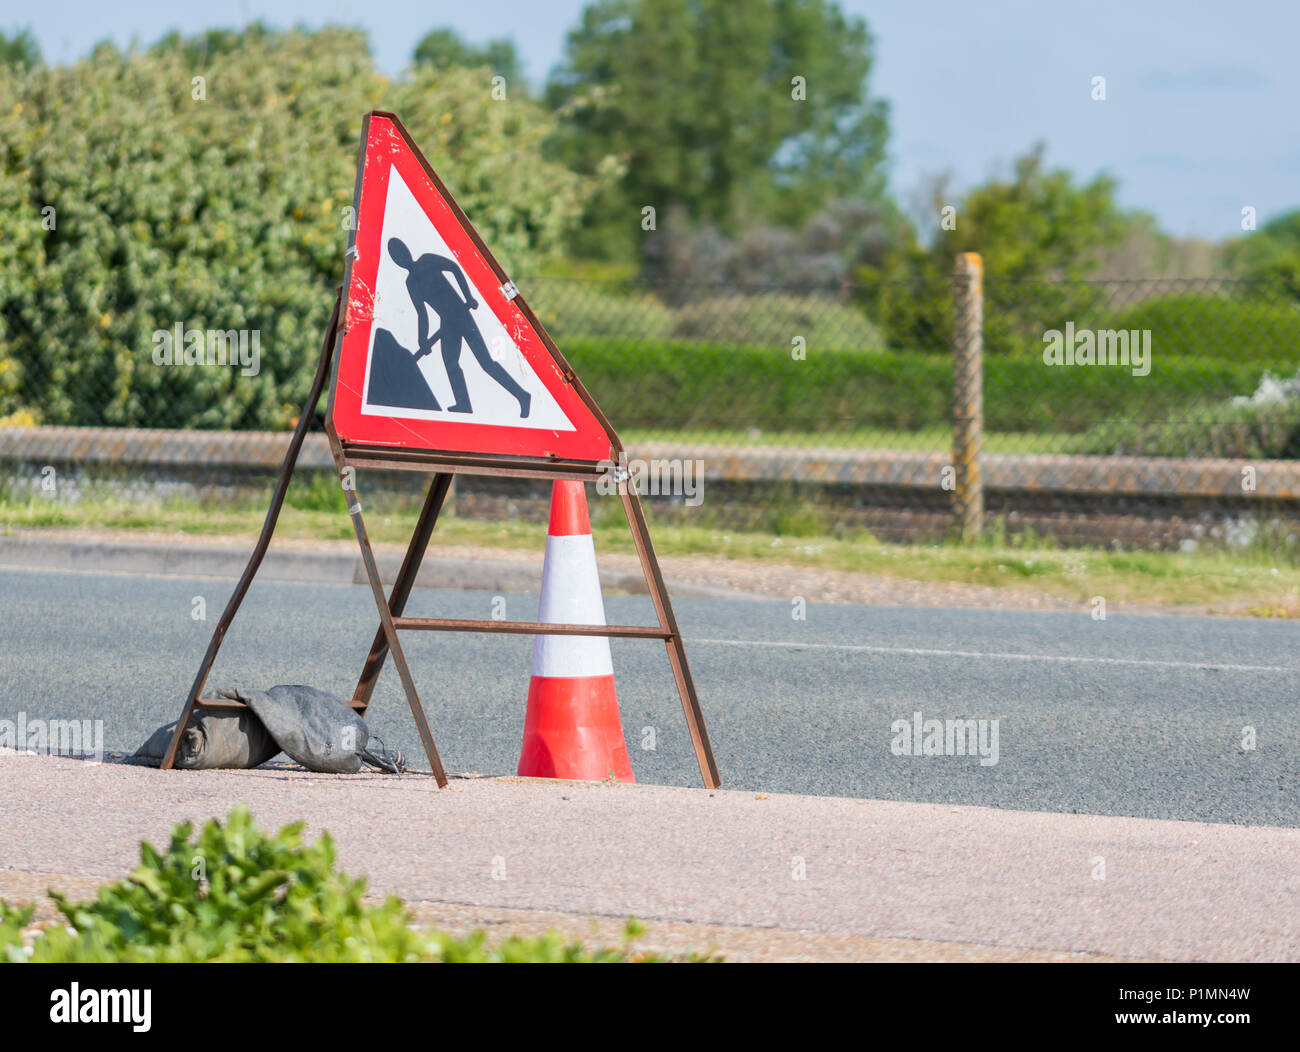 Triangular portable temporary roadworks warning sign in the UK. - Stock Image